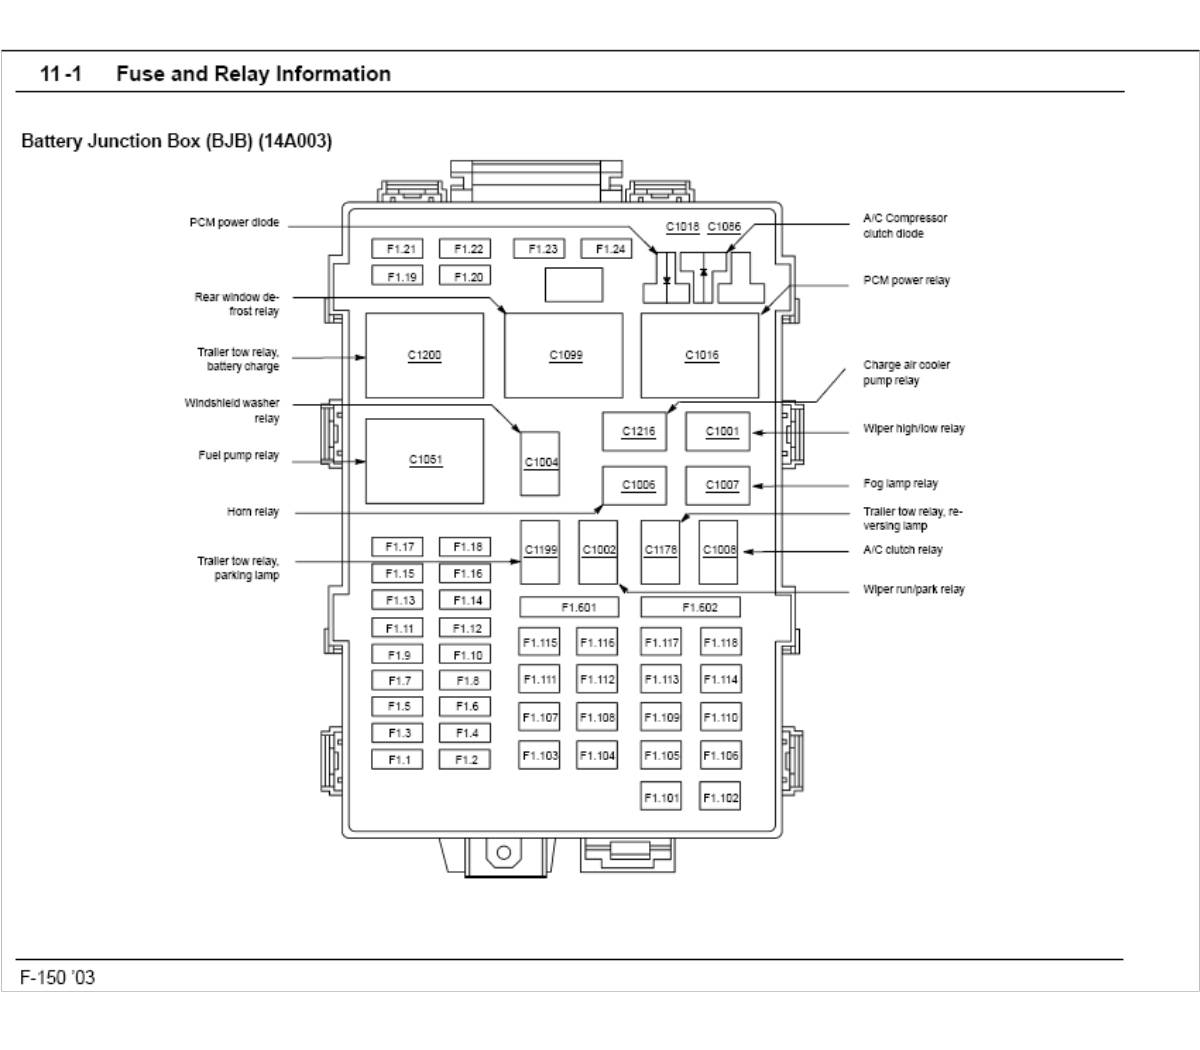 hight resolution of 2003 ford f150 fuse panel diagram wiring diagram blog2003 ford f150 fuse box diagram image details